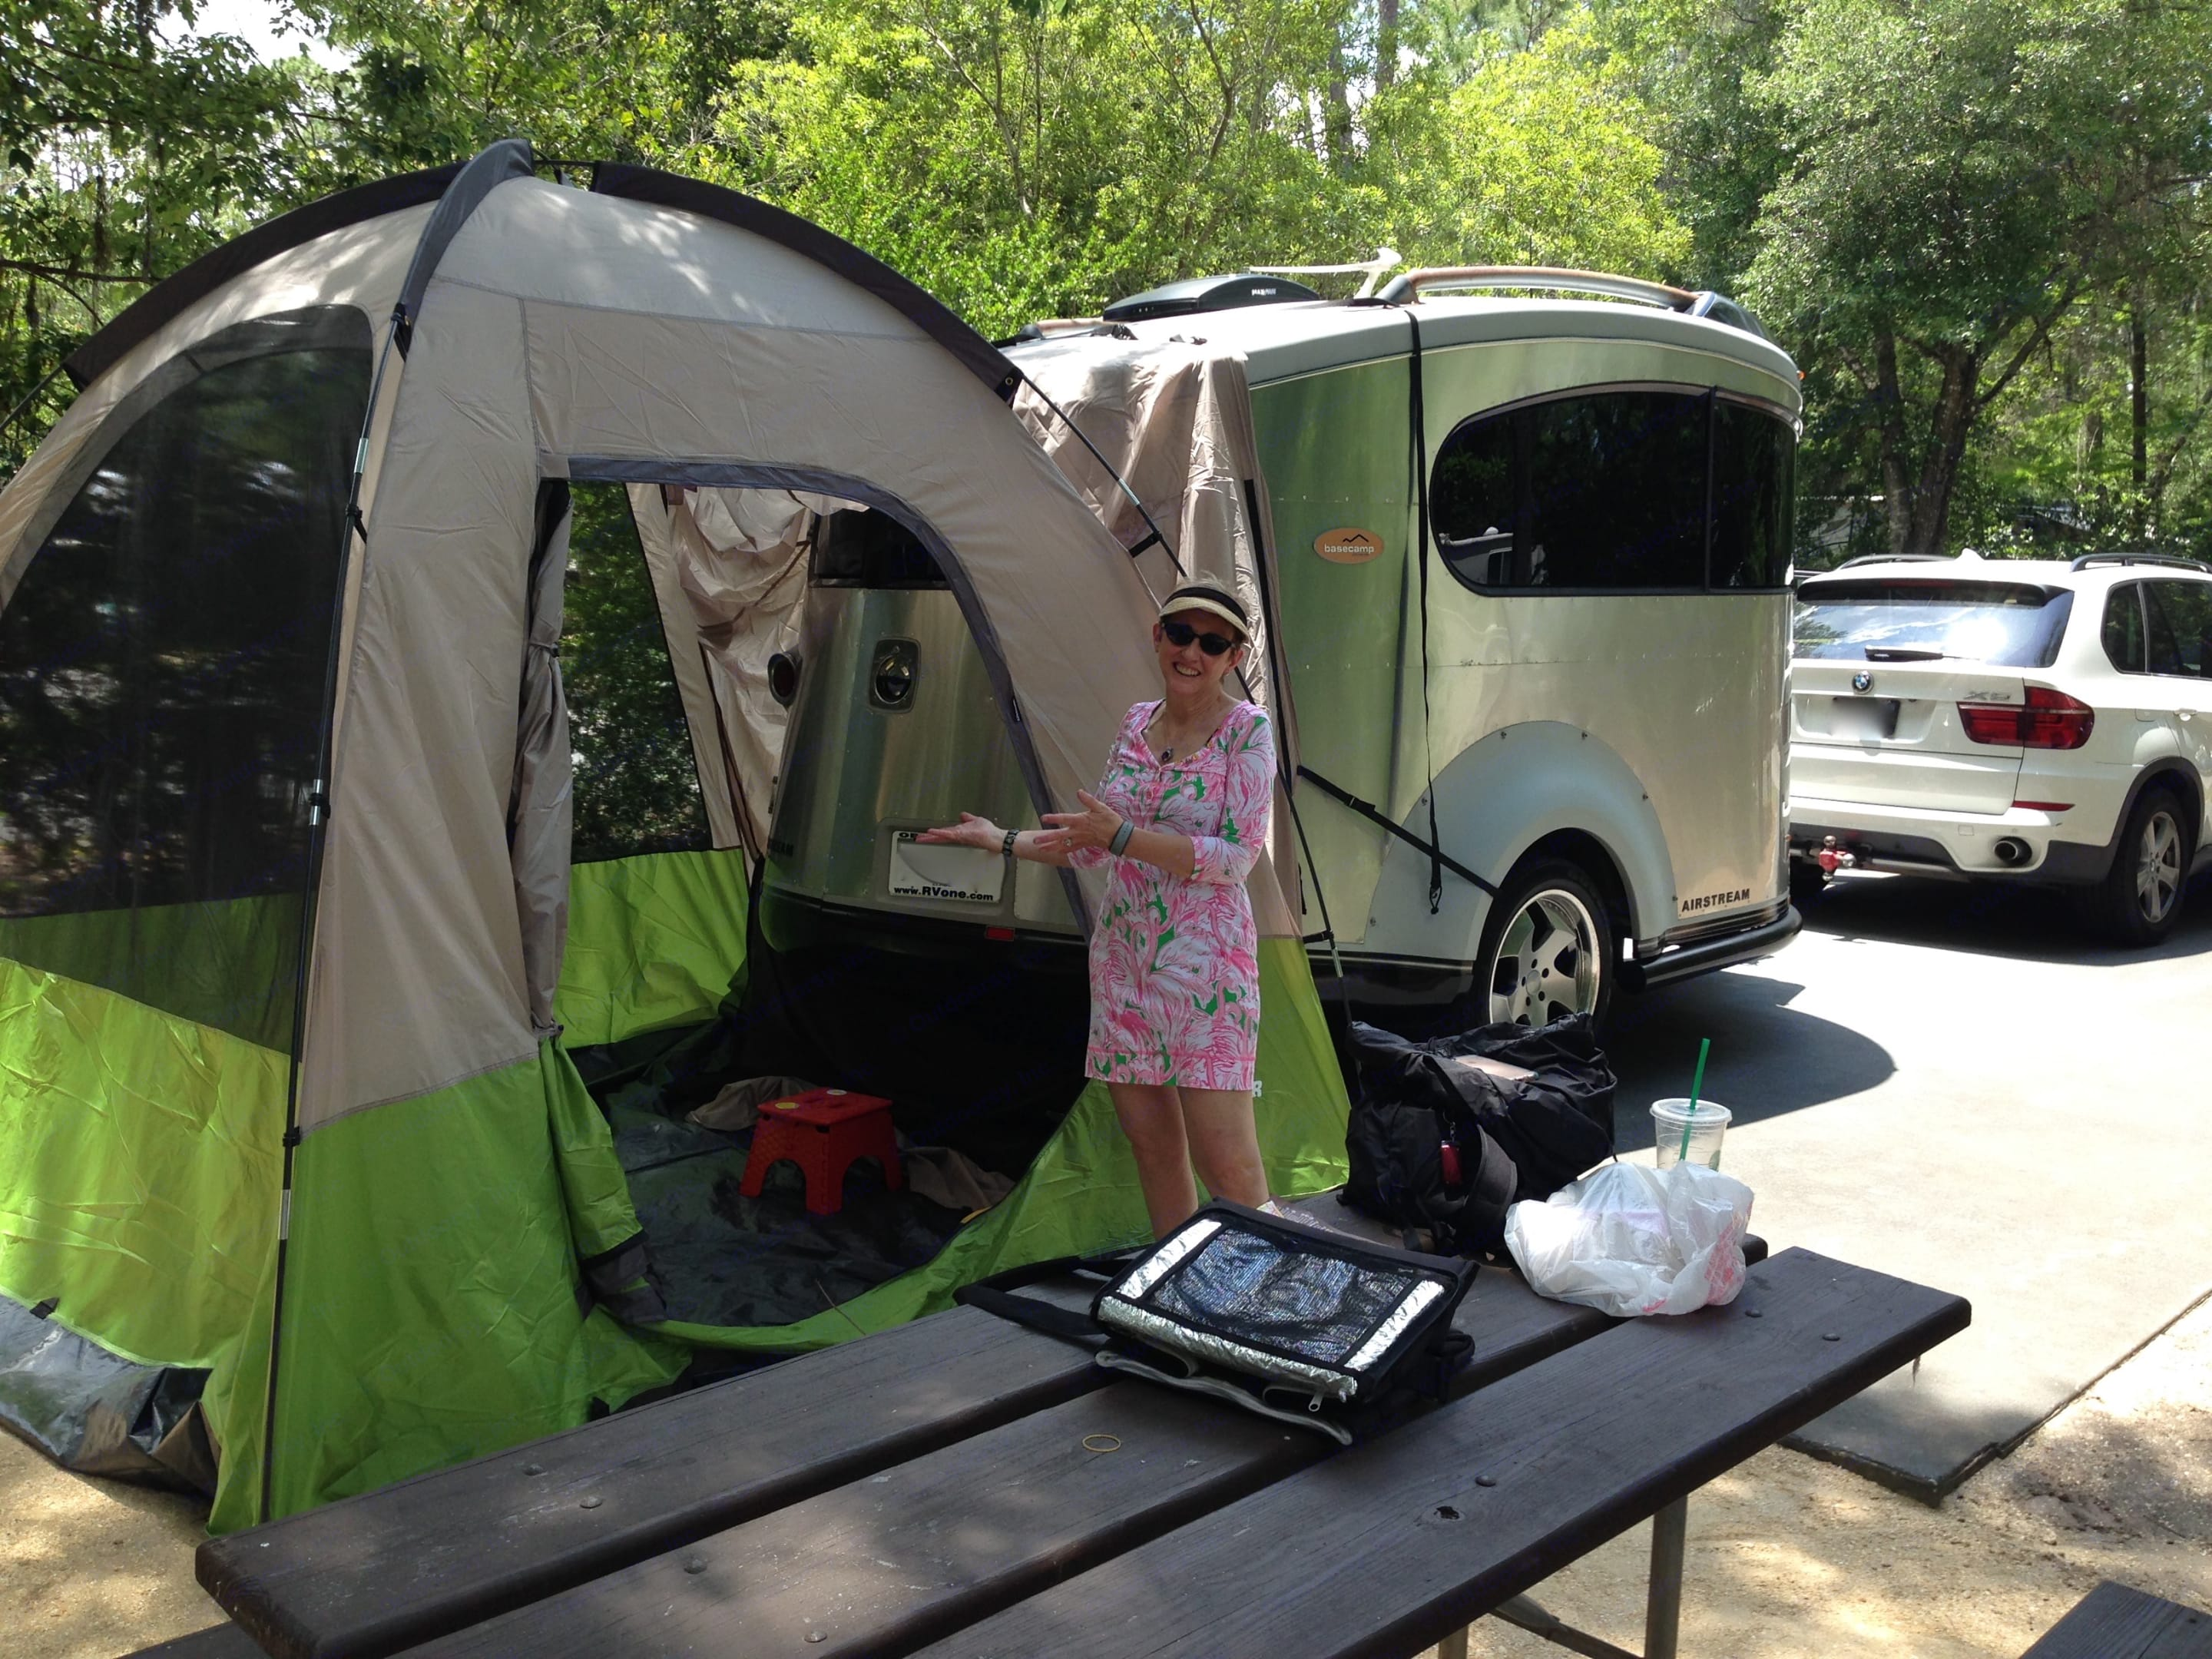 Light towing and easy set up with or without an awning or extension tent. . Airstream Base Camp 2007